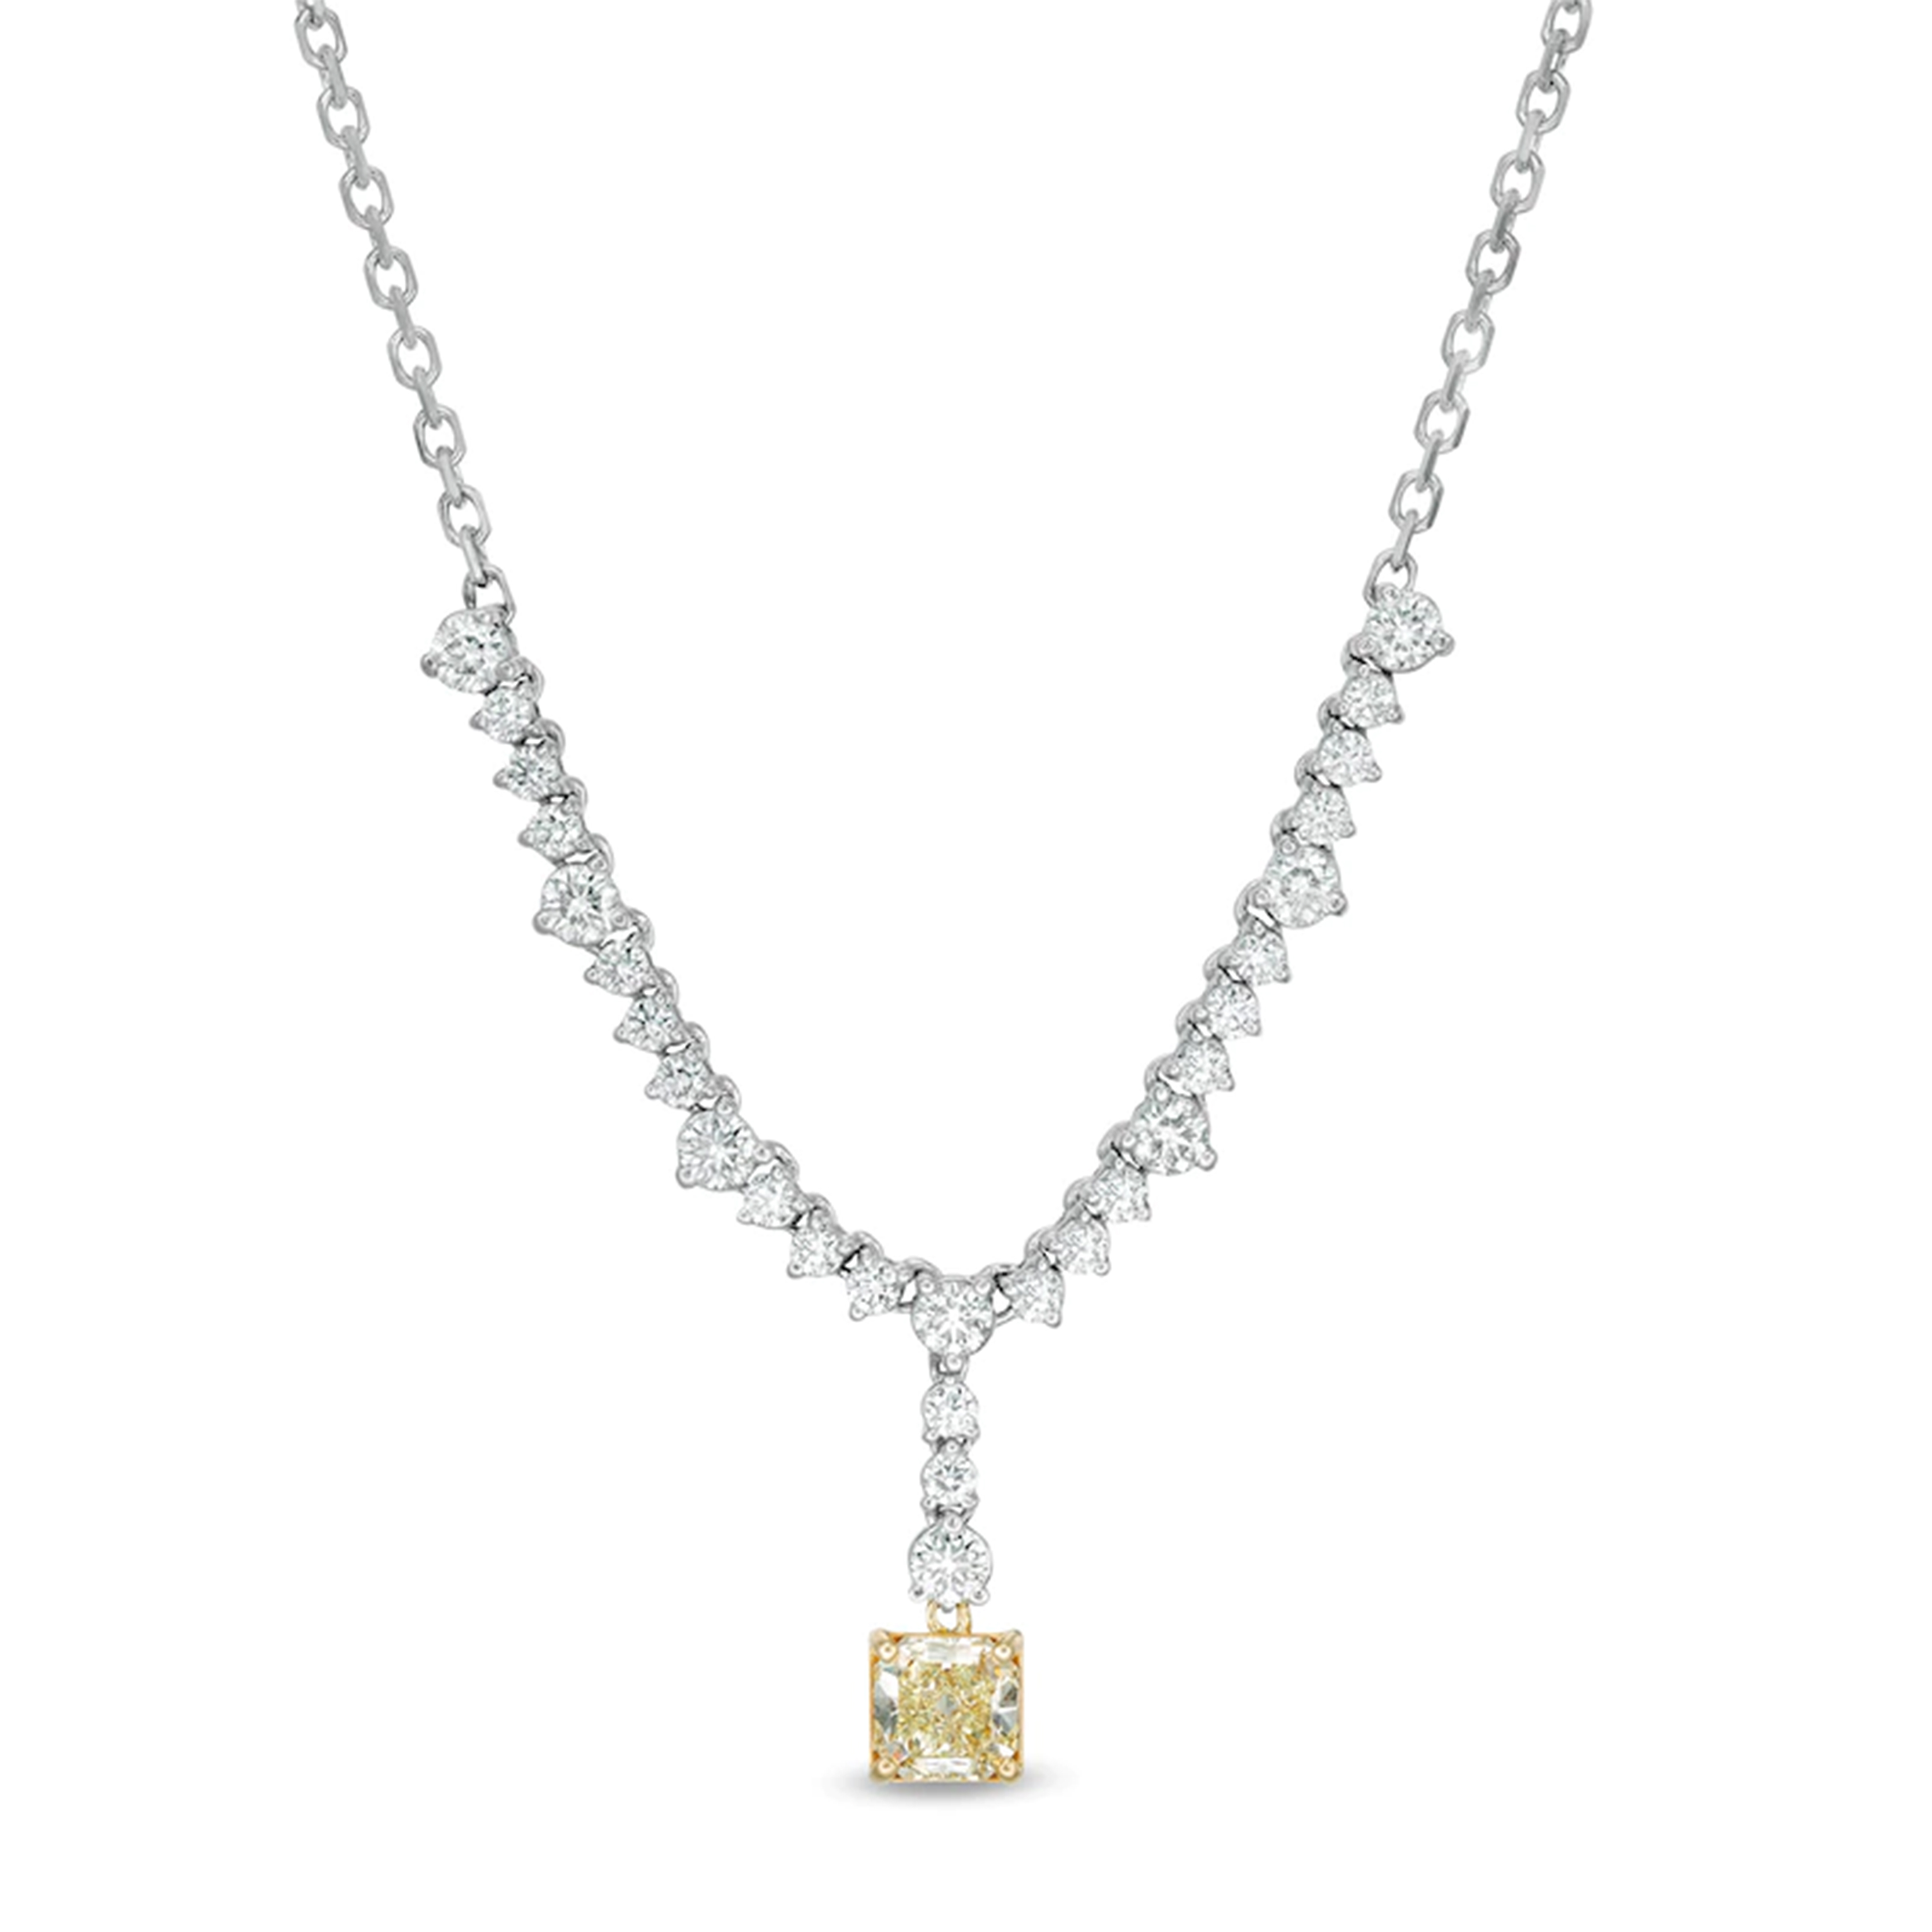 View 4.39ctw Fancy Yellow Diamond Necklace in 14k/18k Two Tone Gold